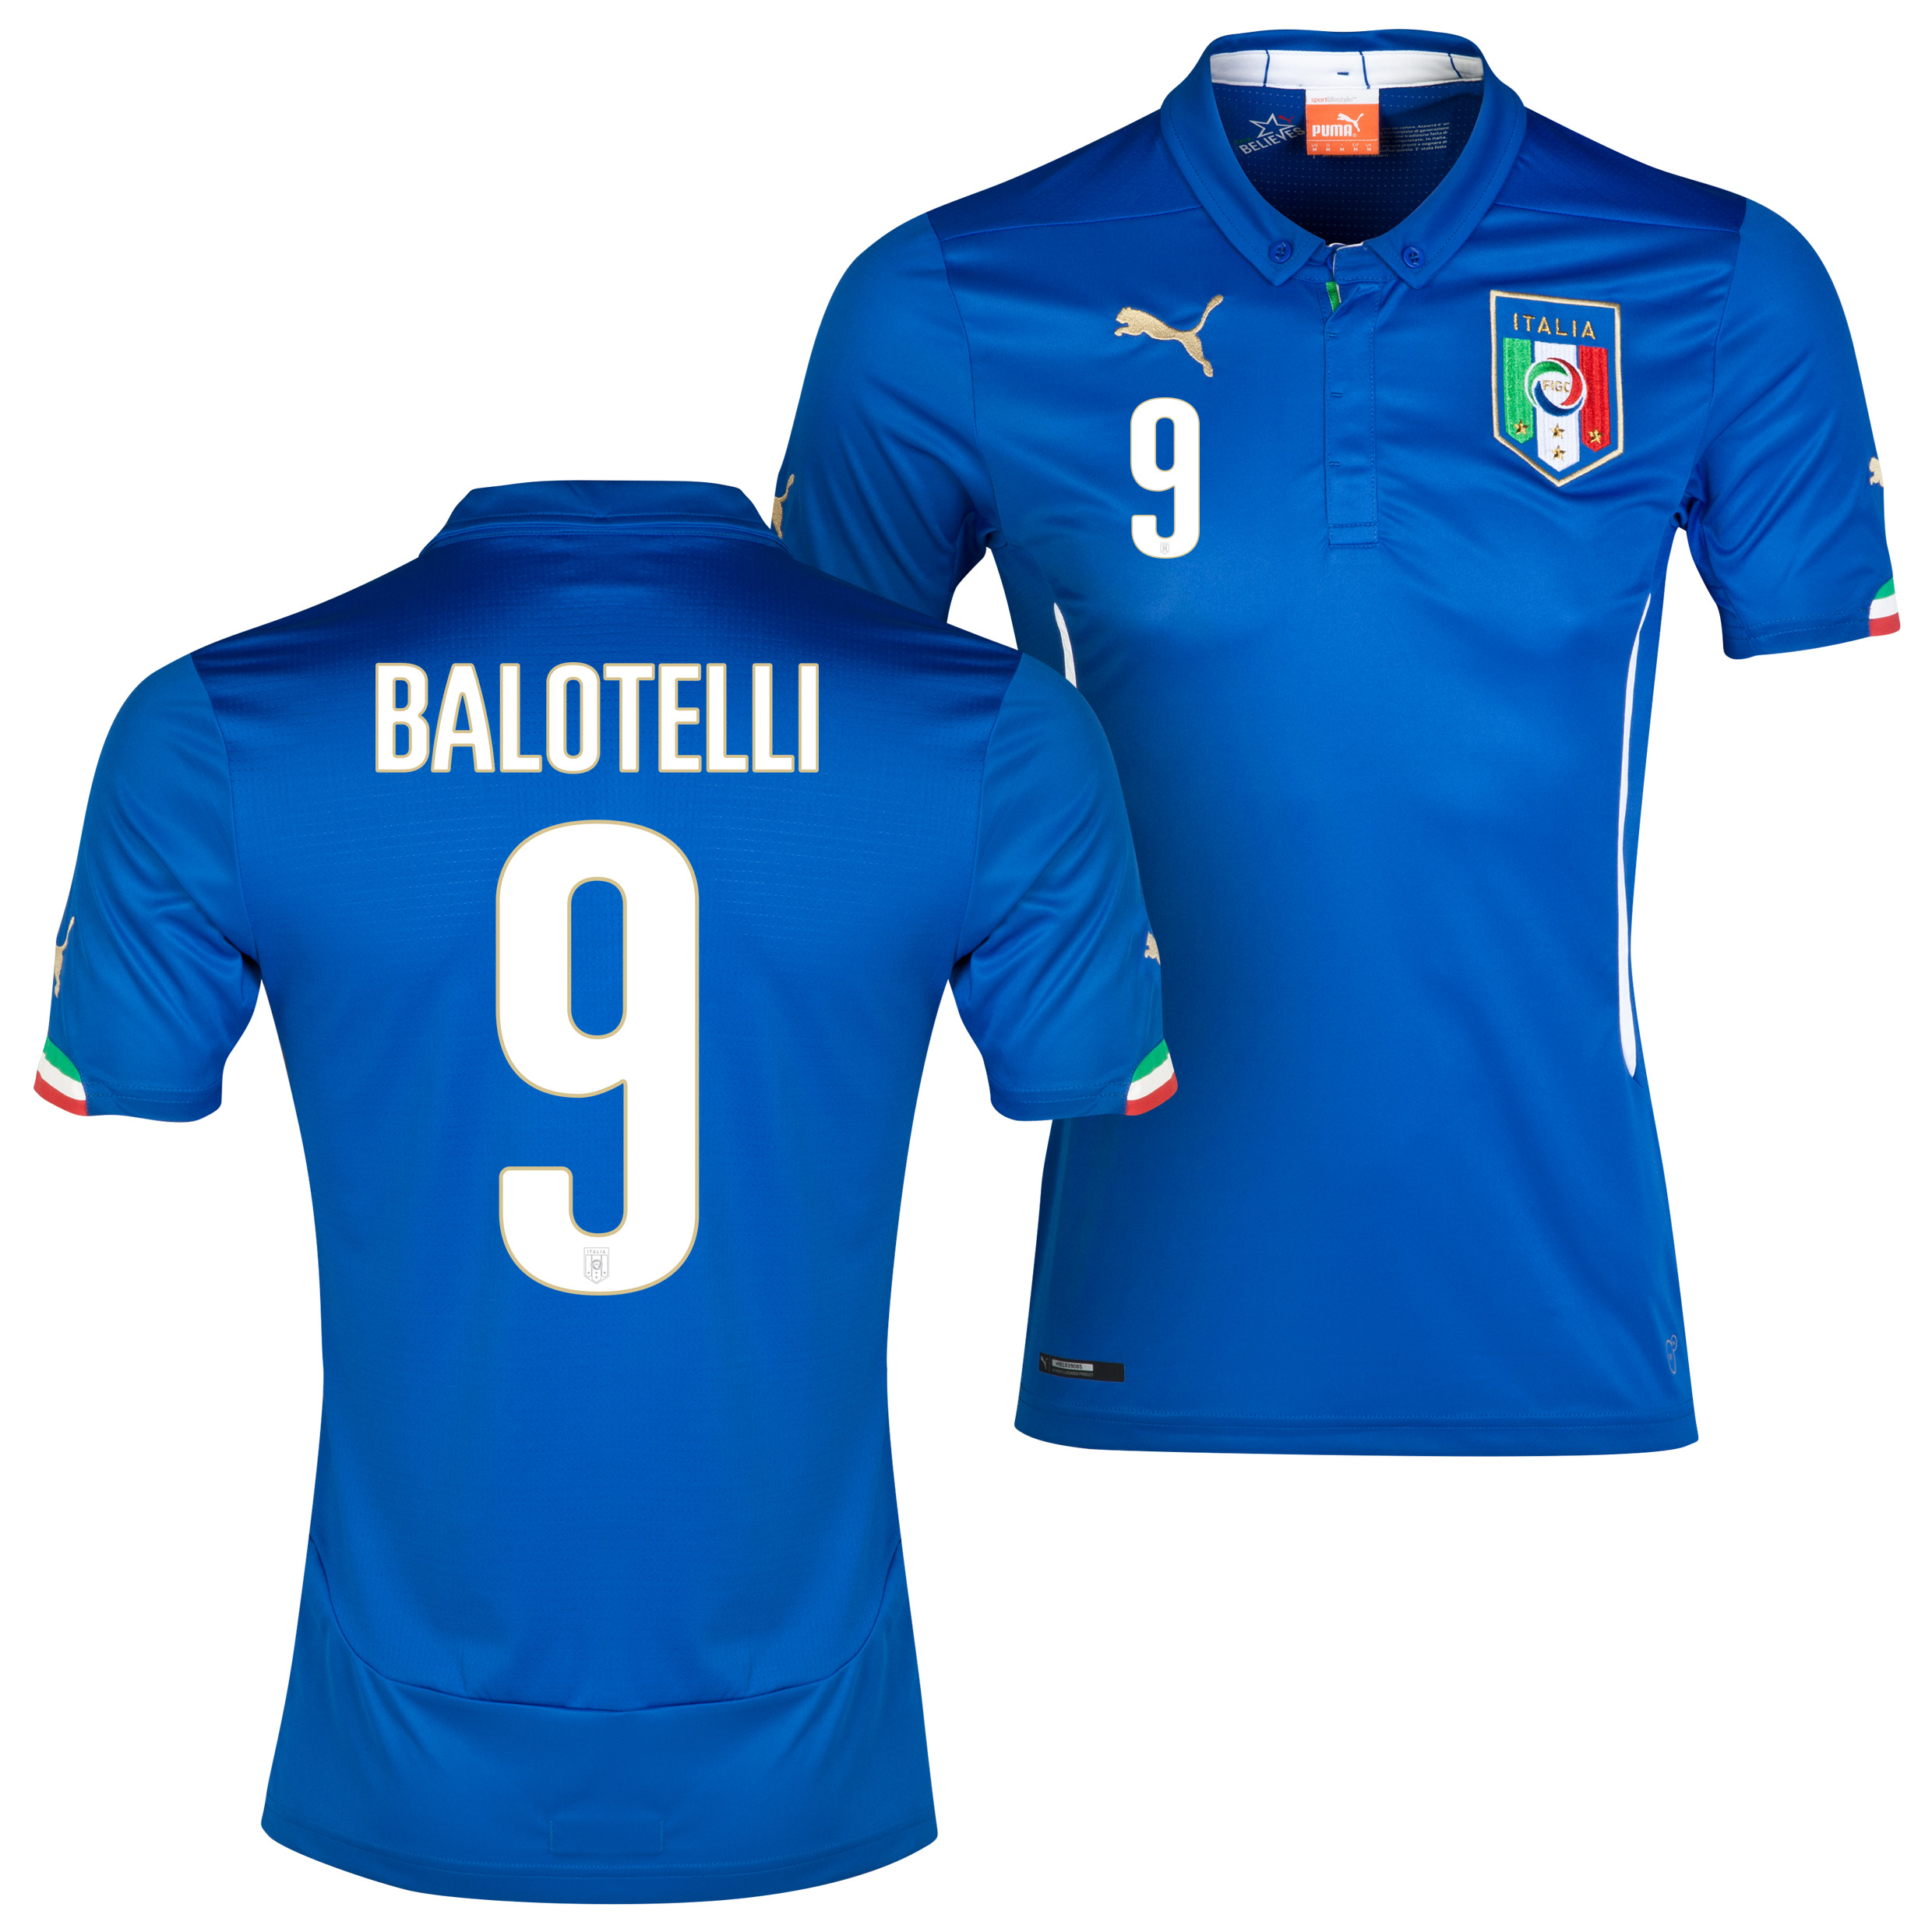 Italy Home Shirt 2013/14 with Balotelli 9 printing